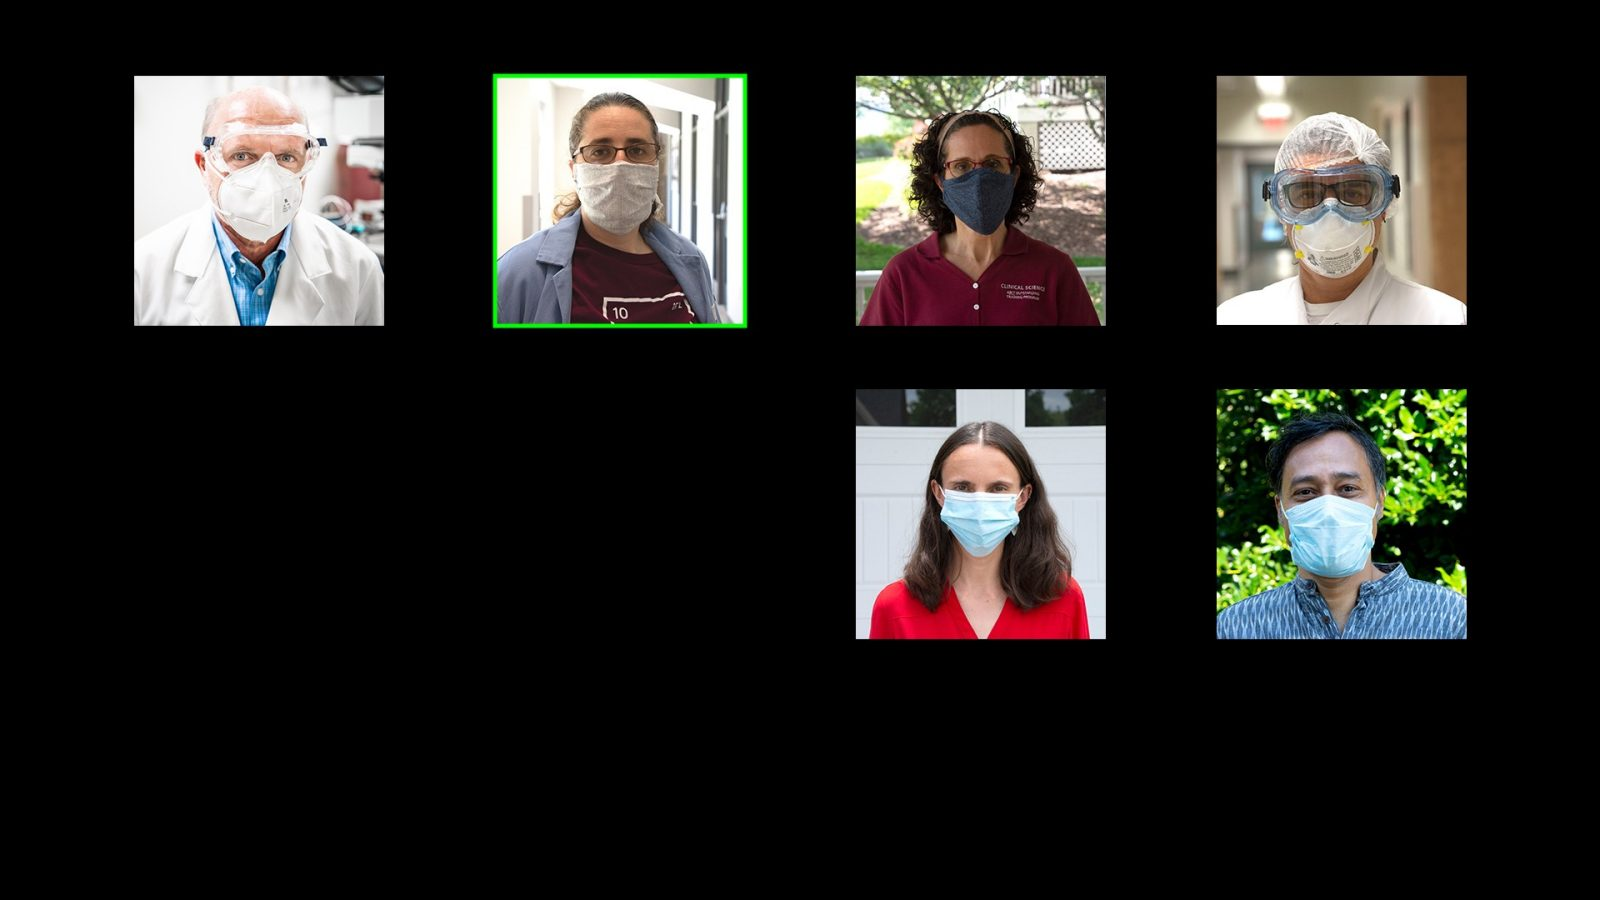 six faculty members in masks are shown in squares to resemble a Zoom meeting